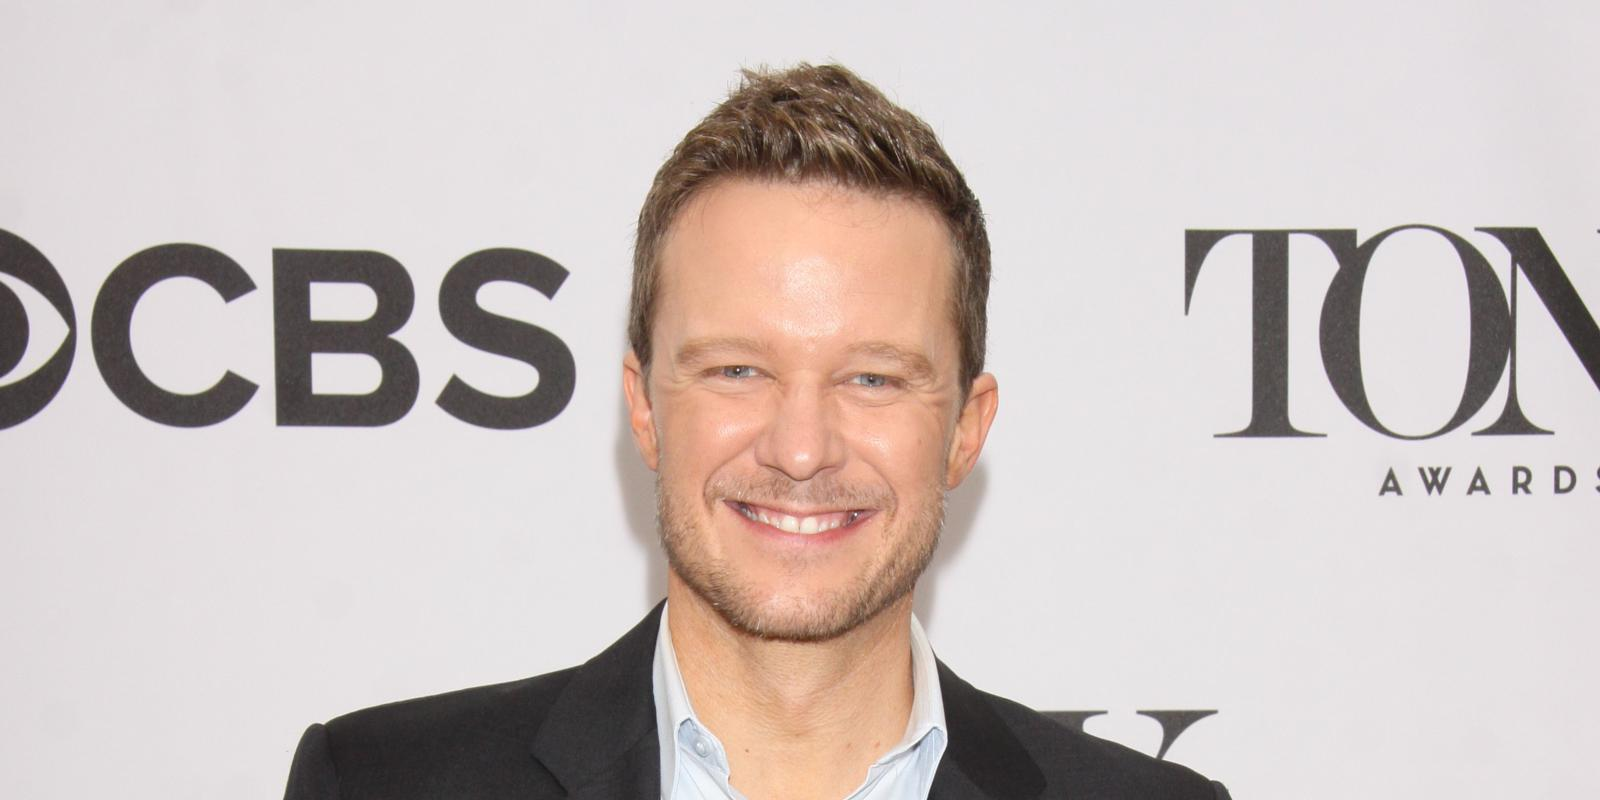 will chase net worth